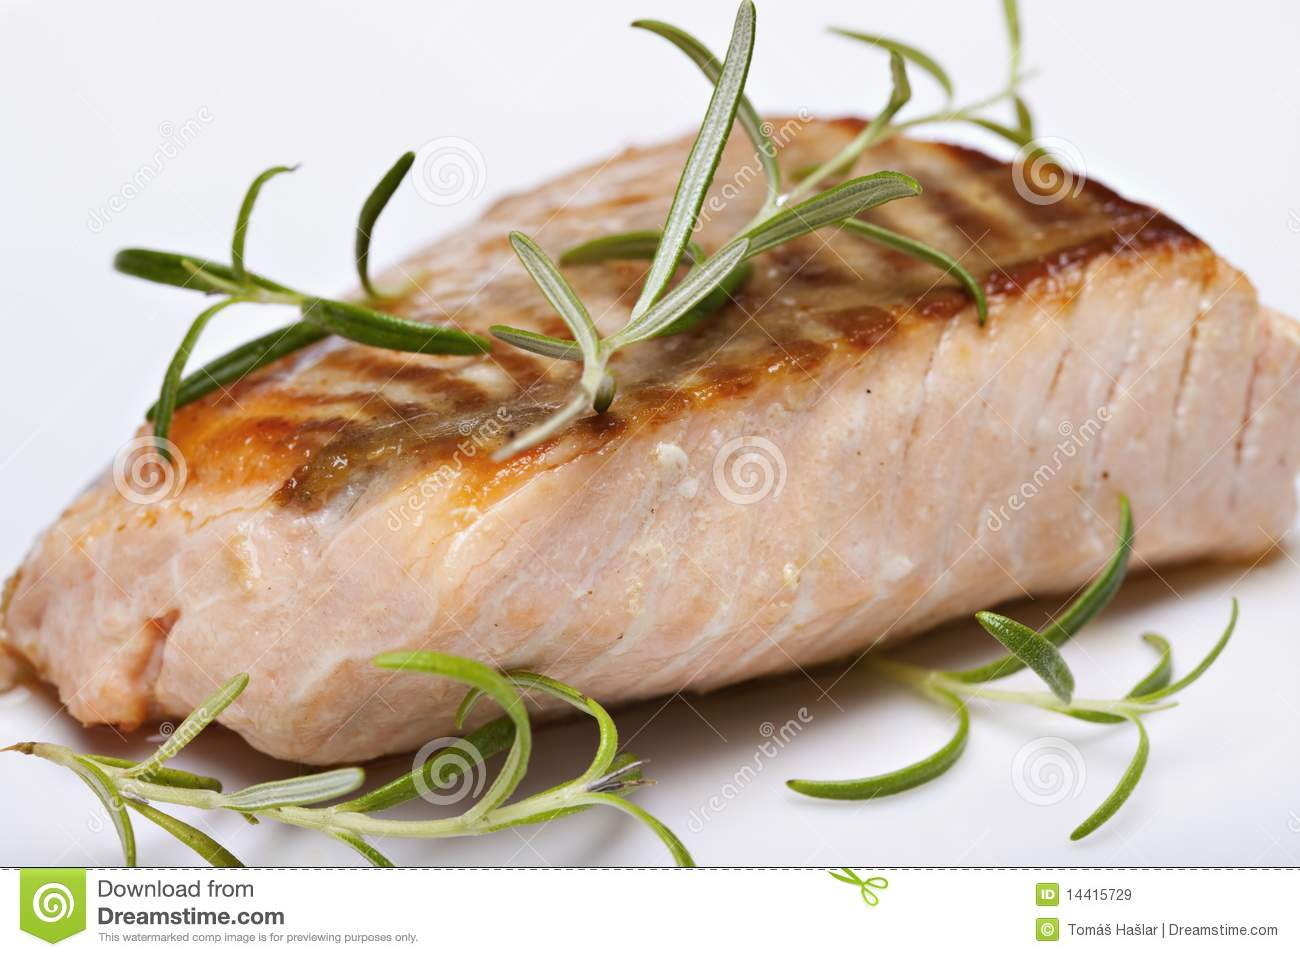 Grilled Fish, Salmon Steak Royalty Free Stock Images - Image: 14415729